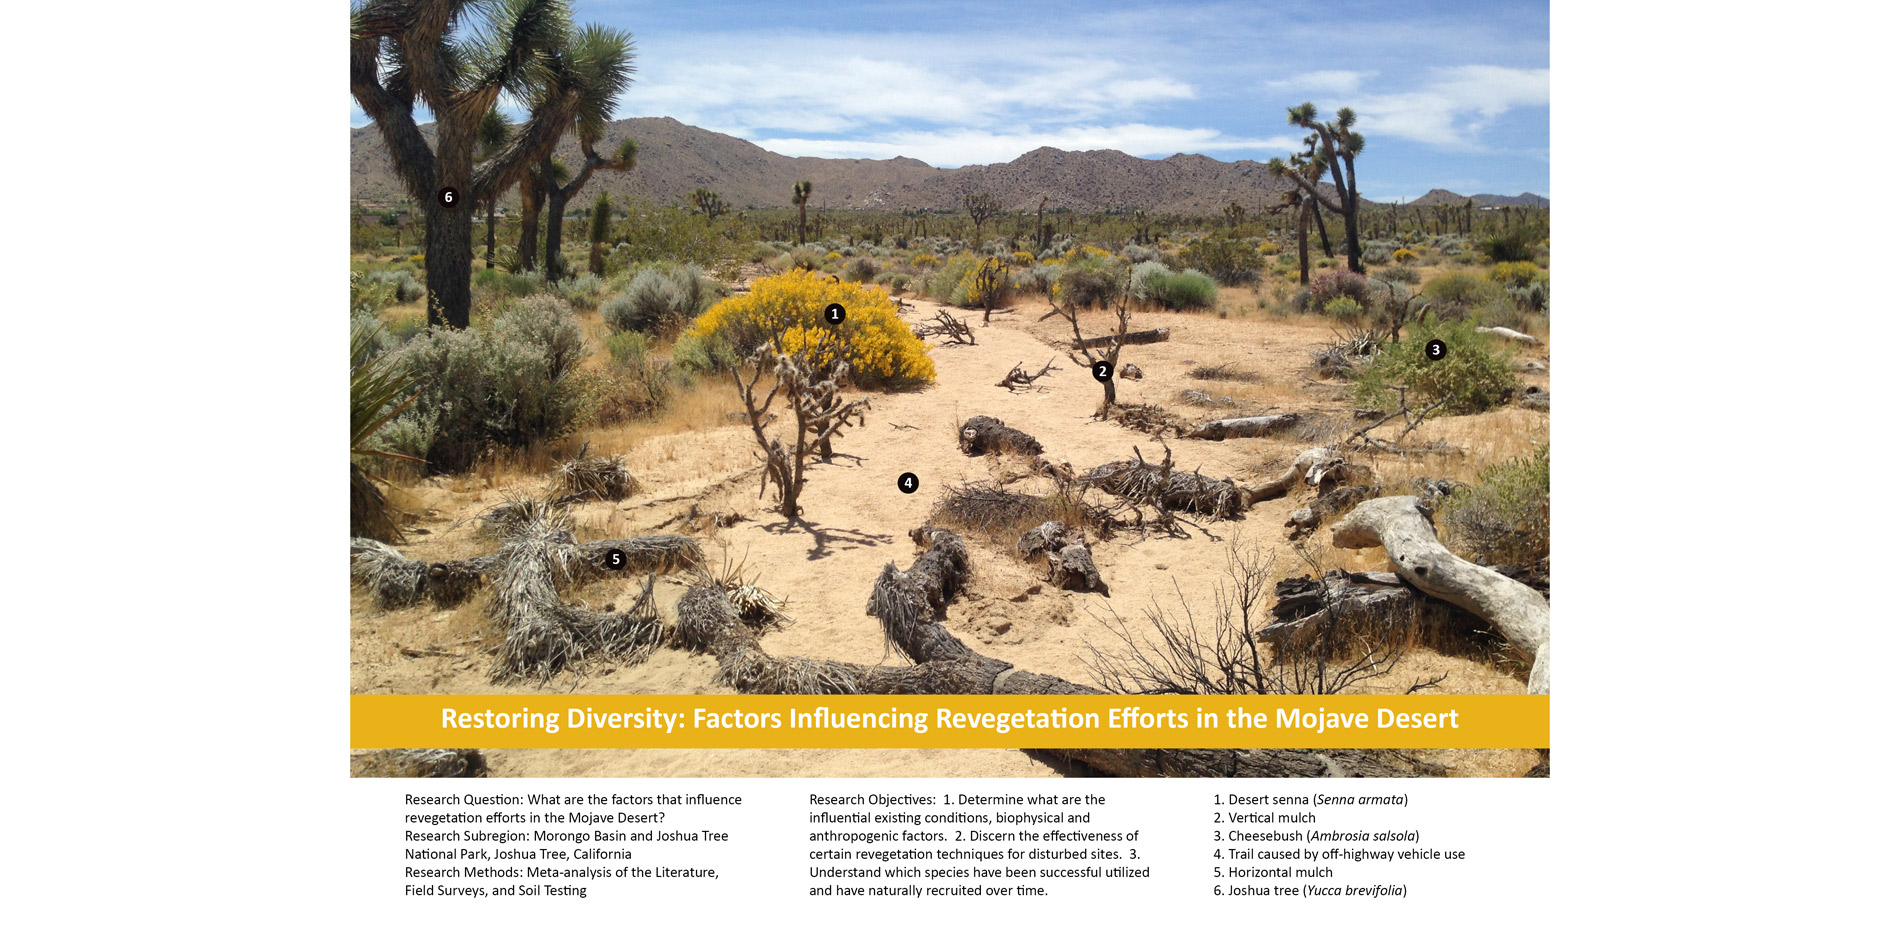 Restoring Diversity: Factors Influencing Revegetation Efforts in the